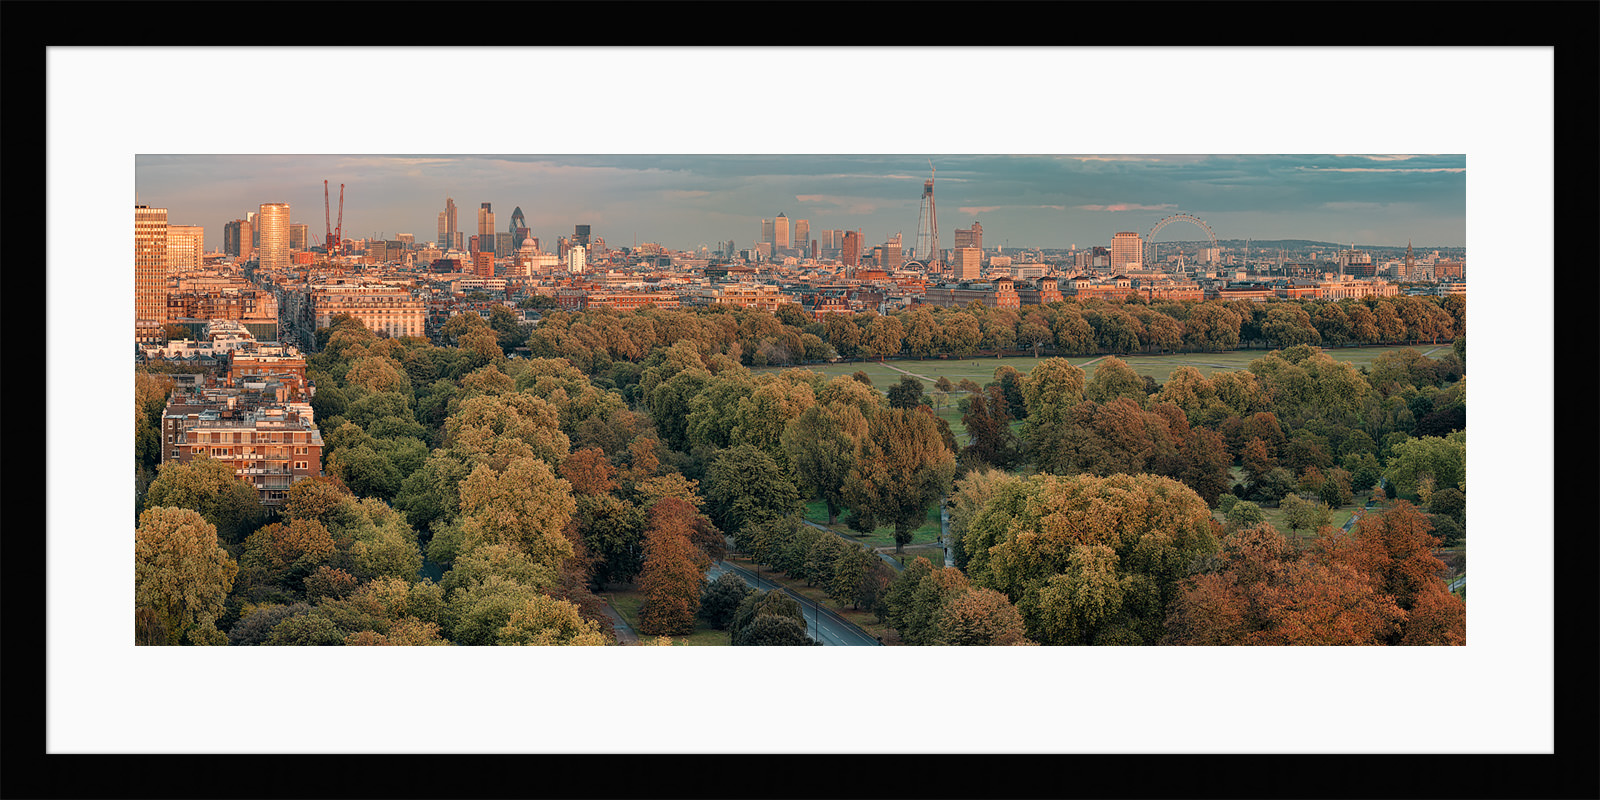 Hyde Park 2011 - Framed Photo Prints of London